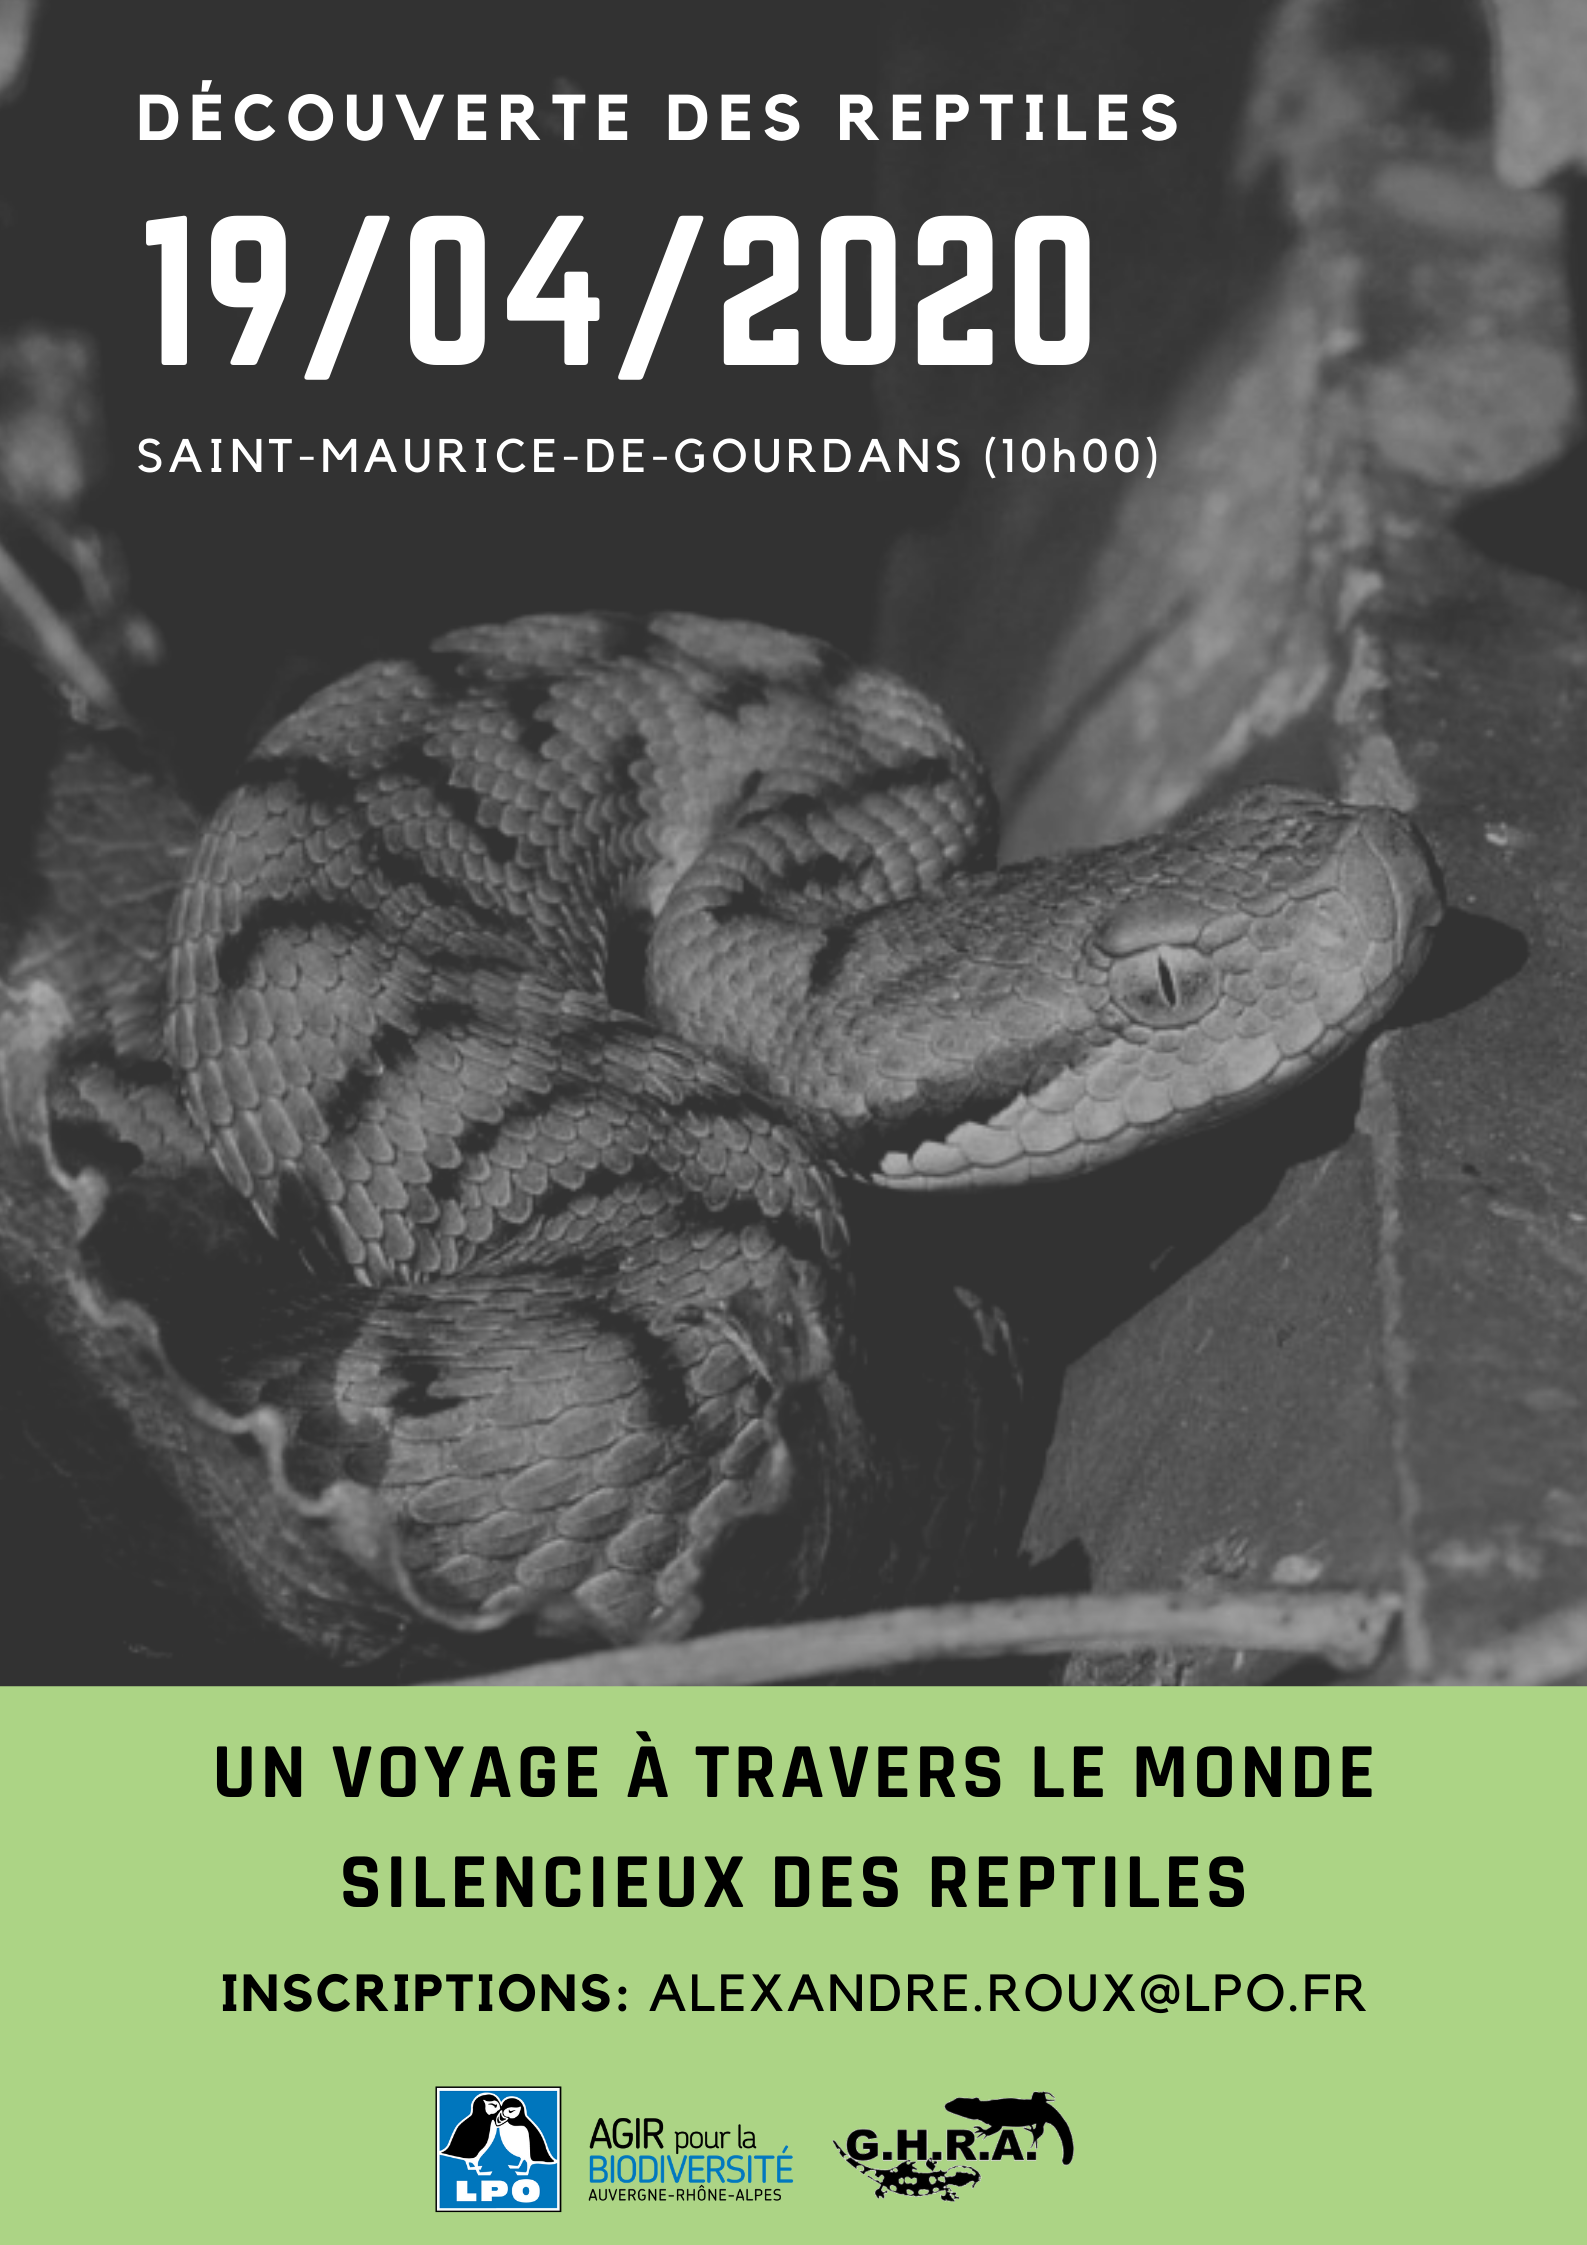 http://files.biolovision.net/www.faune-ain.org/userfiles/Affichereptiles2020.png